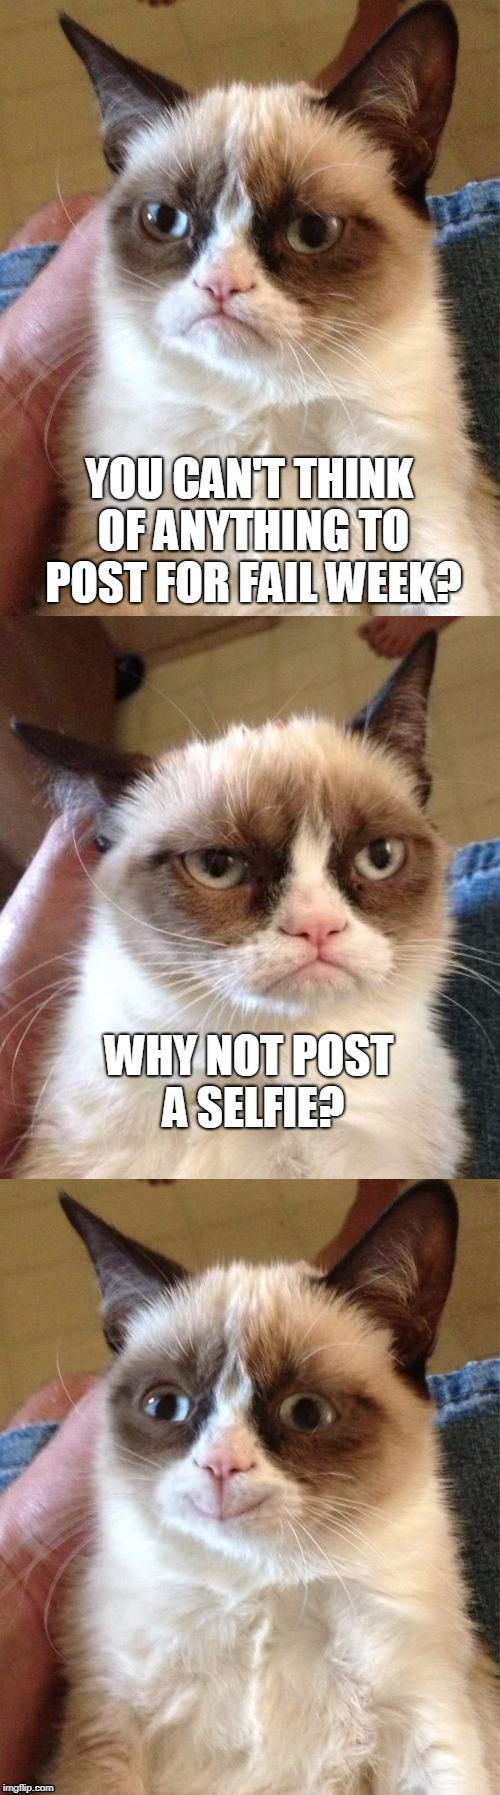 Fail Week - from August 27th to September 3rd (a Landon_the_memer event). | YOU CAN'T THINK OF ANYTHING TO POST FOR FAIL WEEK? WHY NOT POST A SELFIE? | image tagged in bad pun grumpy cat,memes,fail week,selfie,grumpy cat insults,landon_the_memer | made w/ Imgflip meme maker